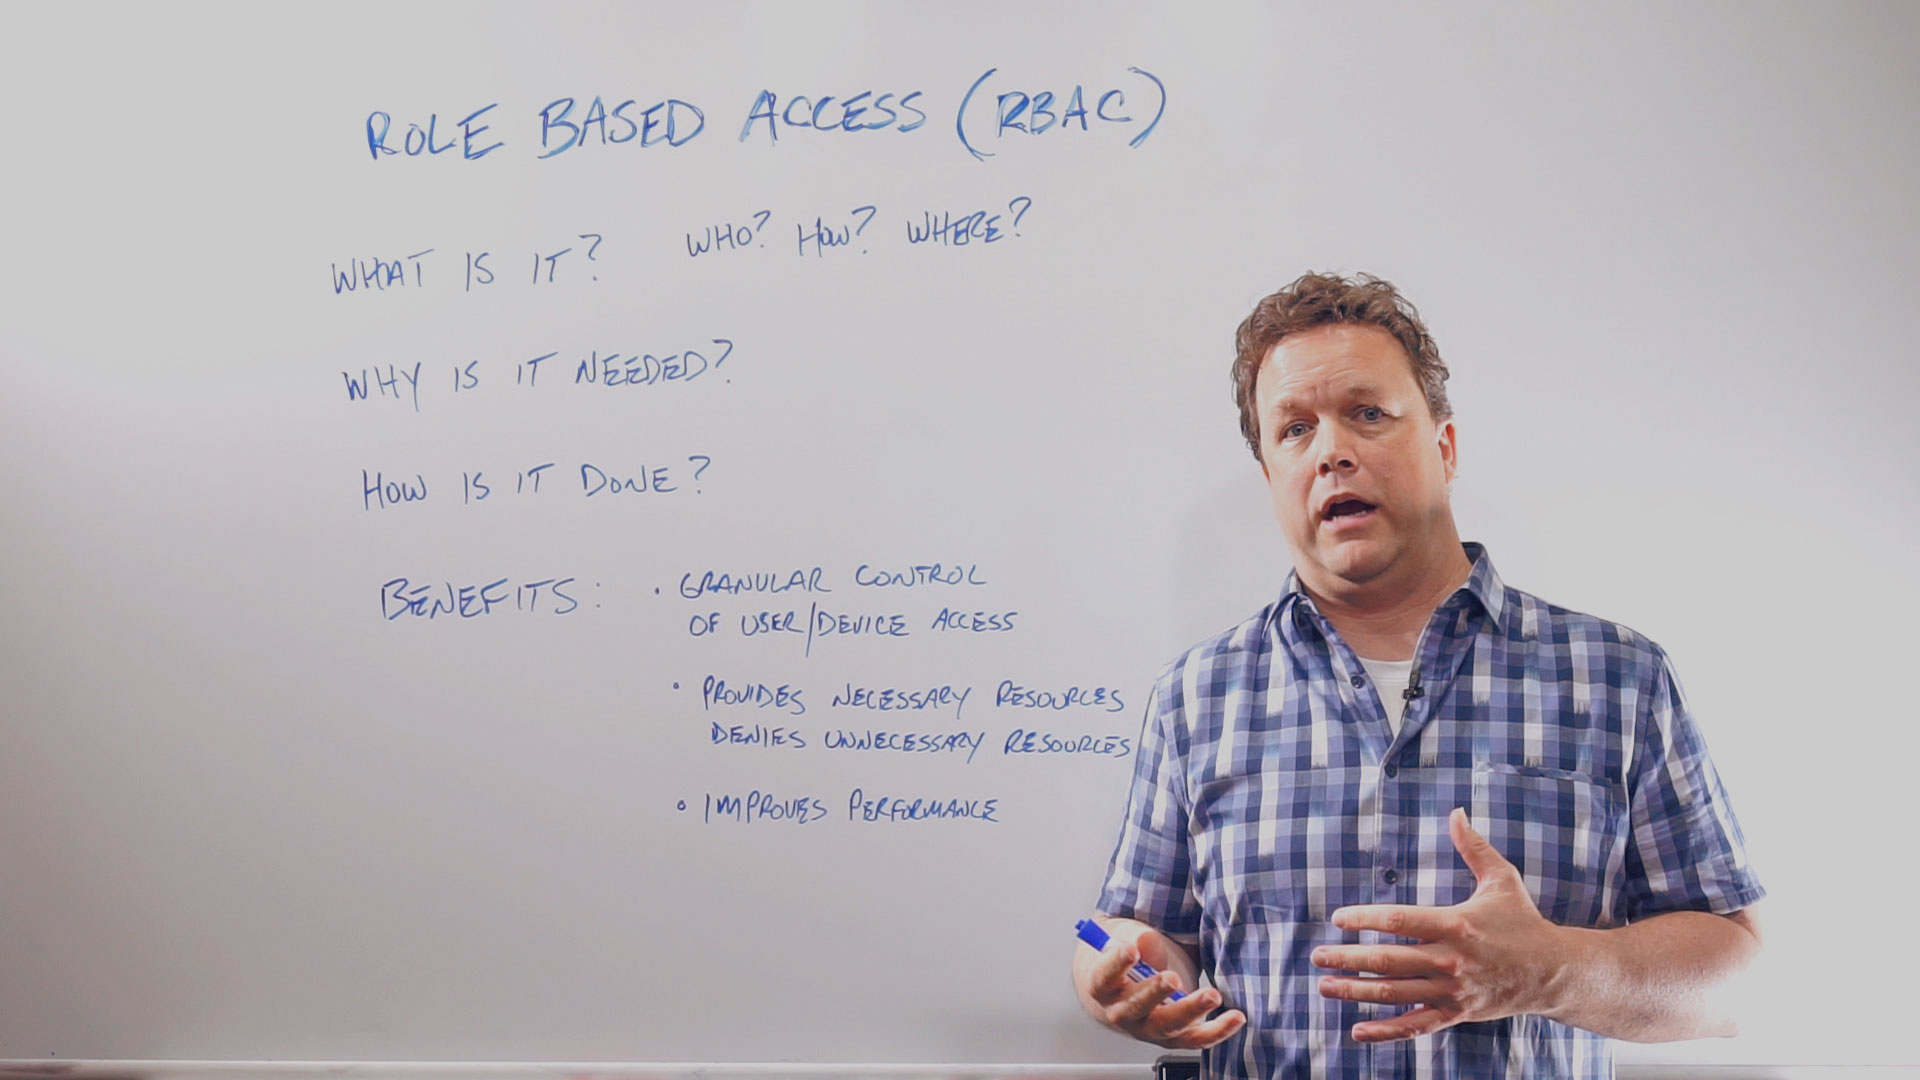 Role-Based Access Control: What is It, and What are the Benefits? [Whiteboard Wednesday]